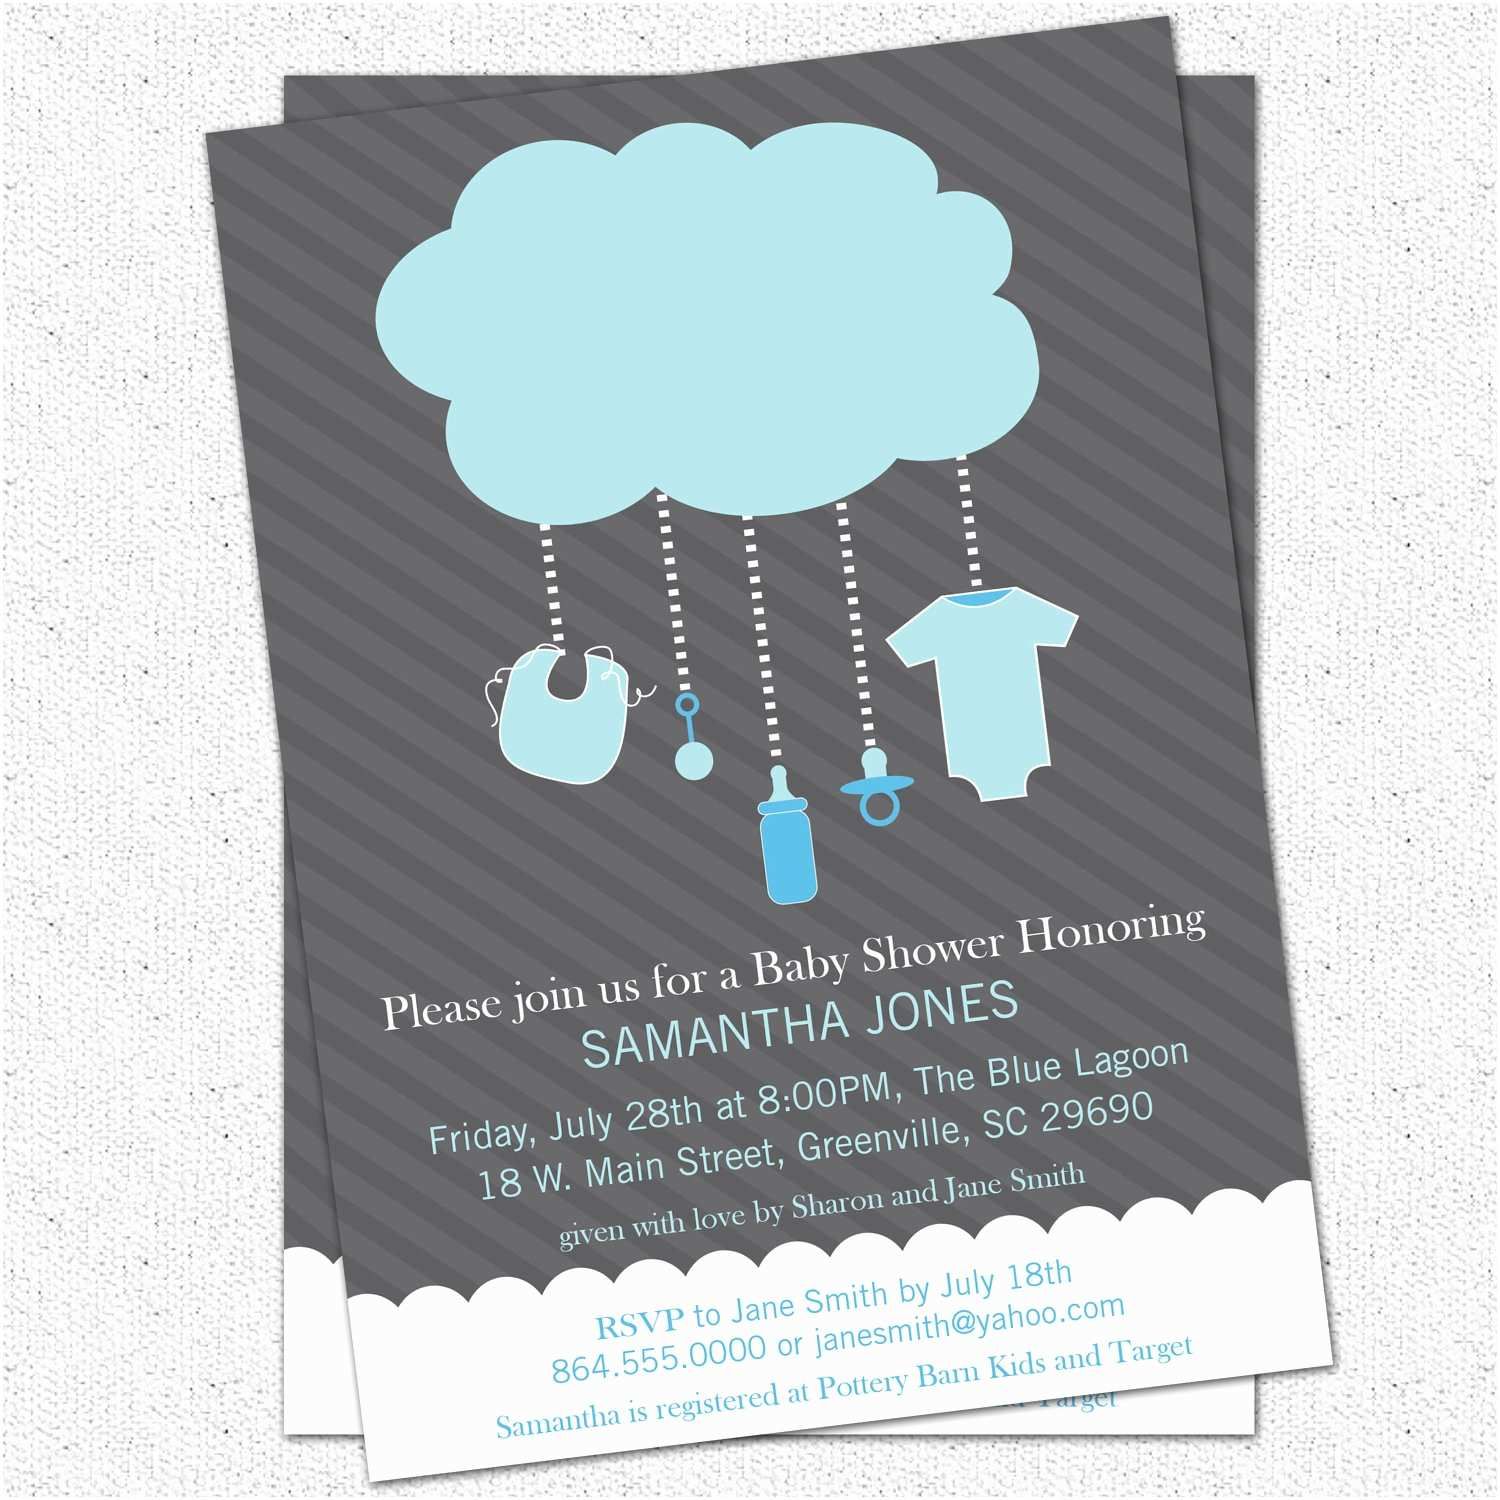 Boy Baby Shower Invitations Popular Items for Rain Image